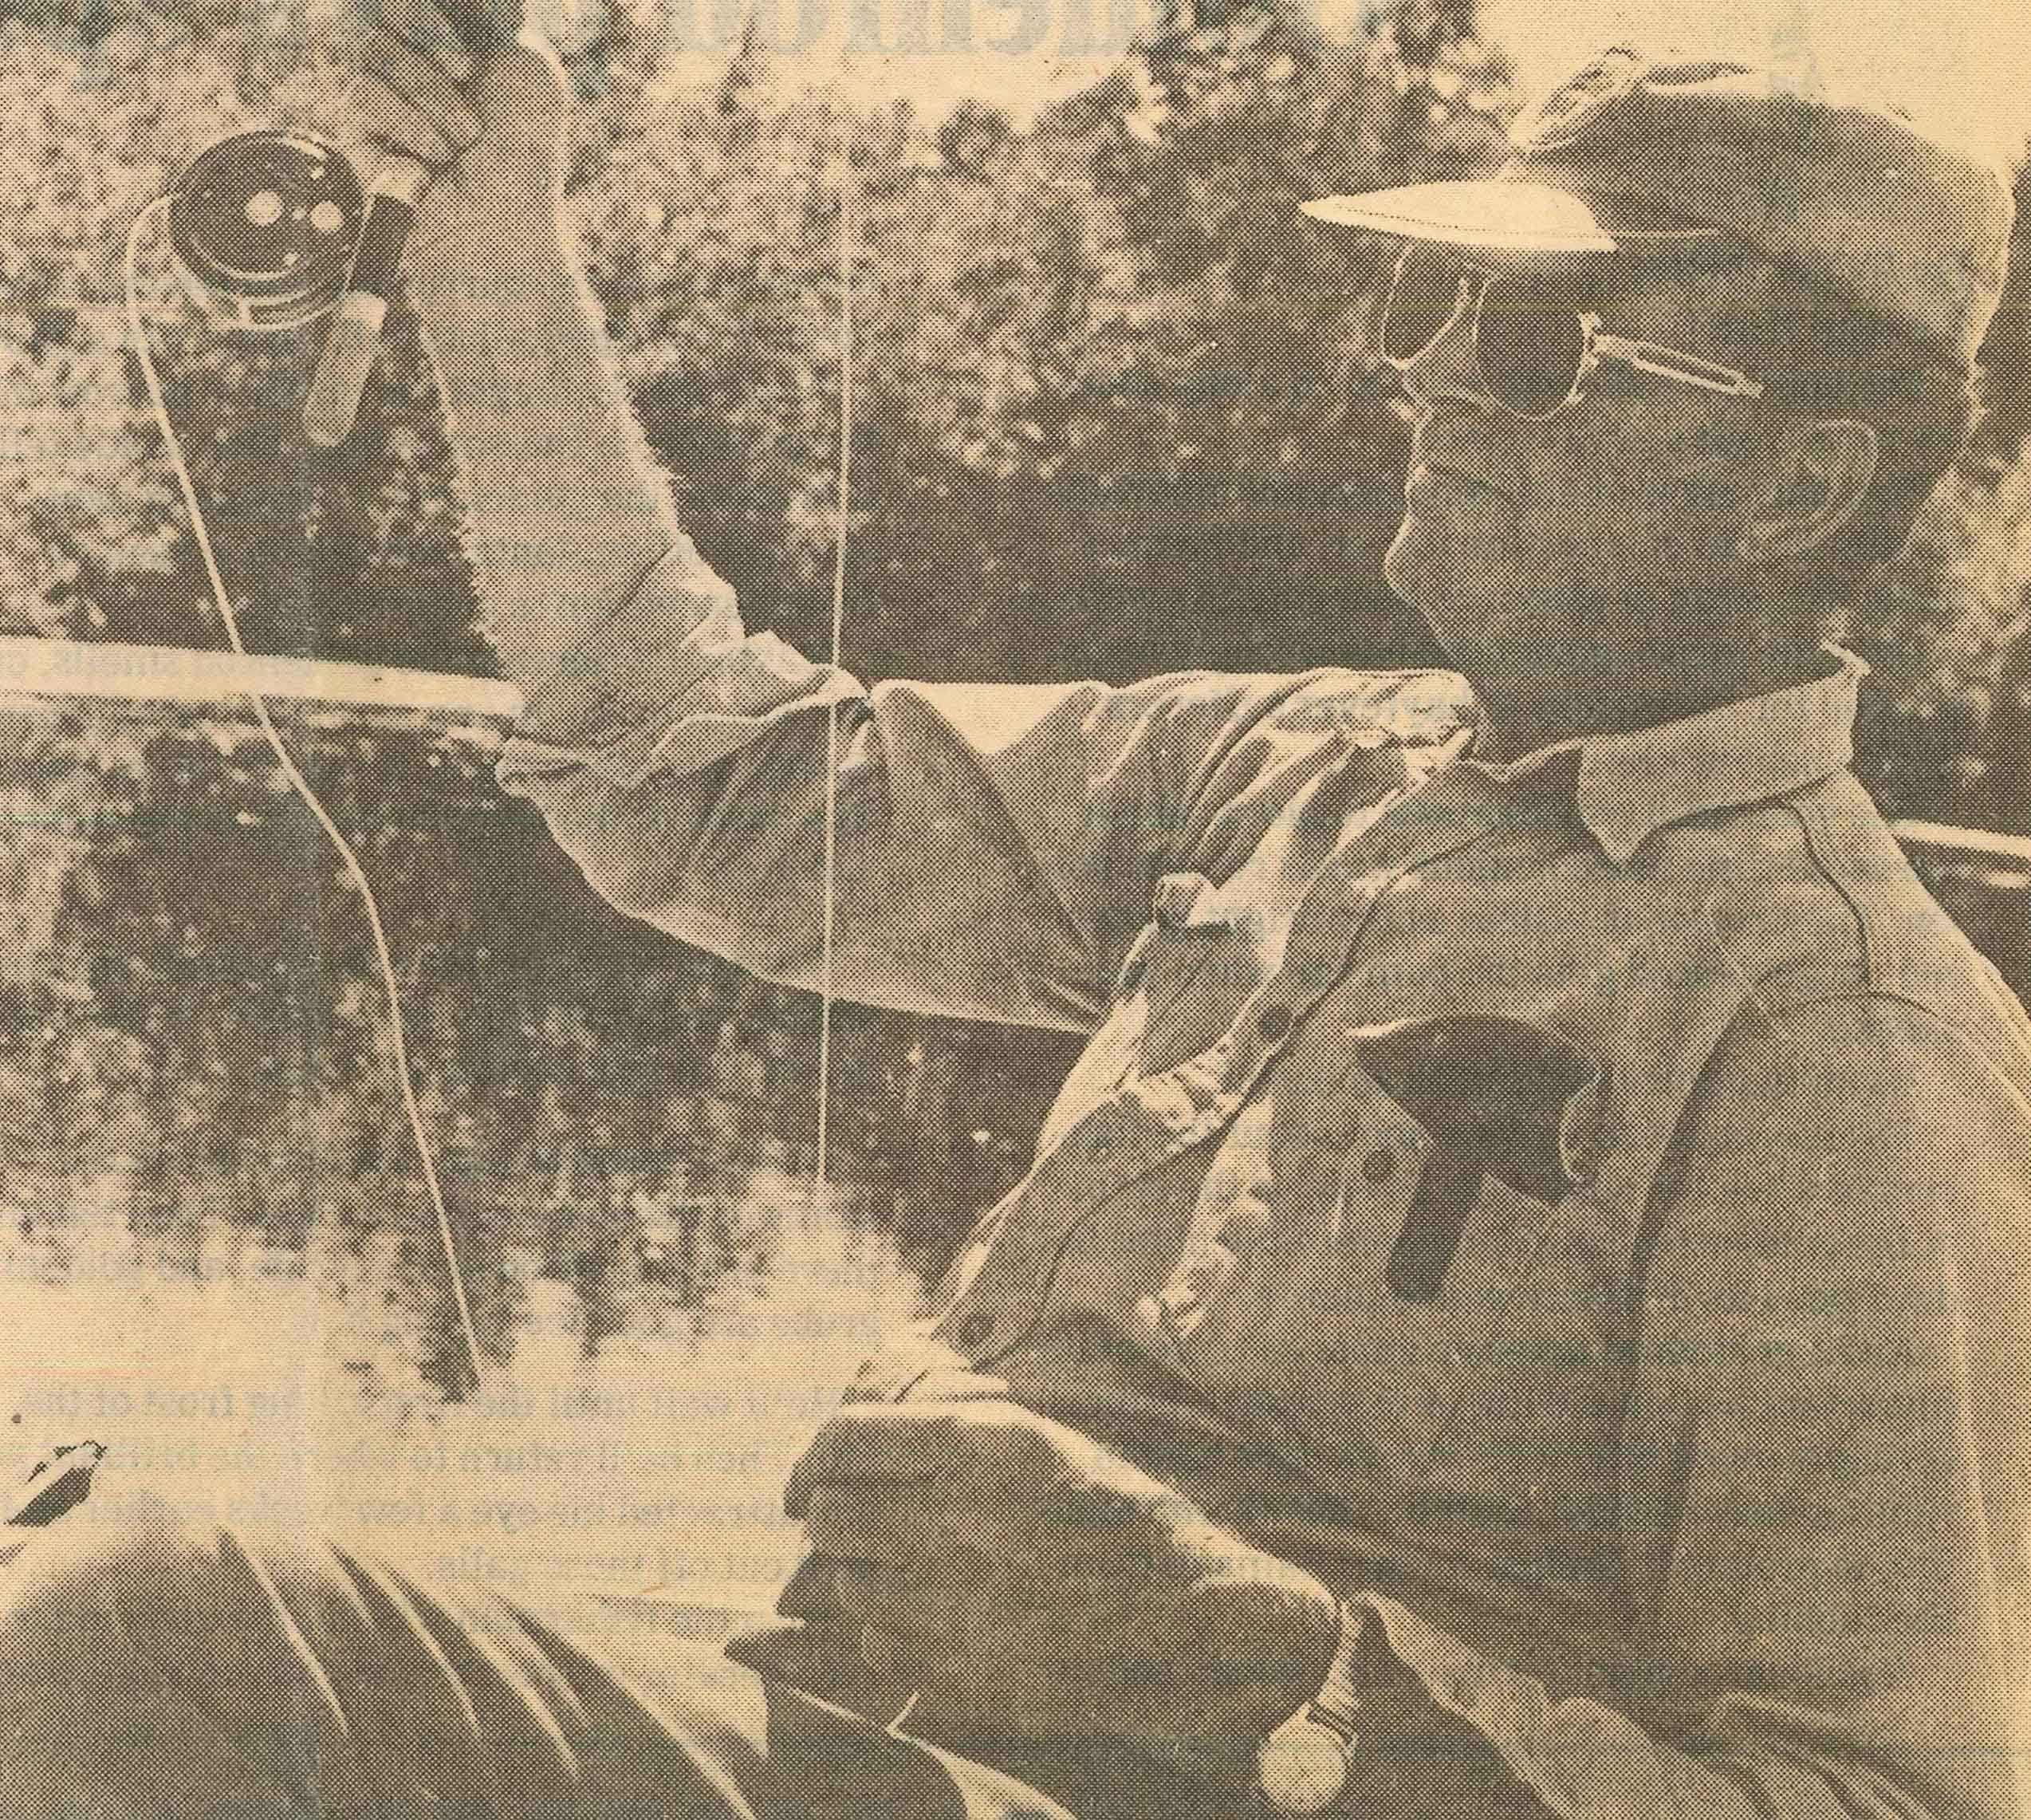 Al Langlois fishing